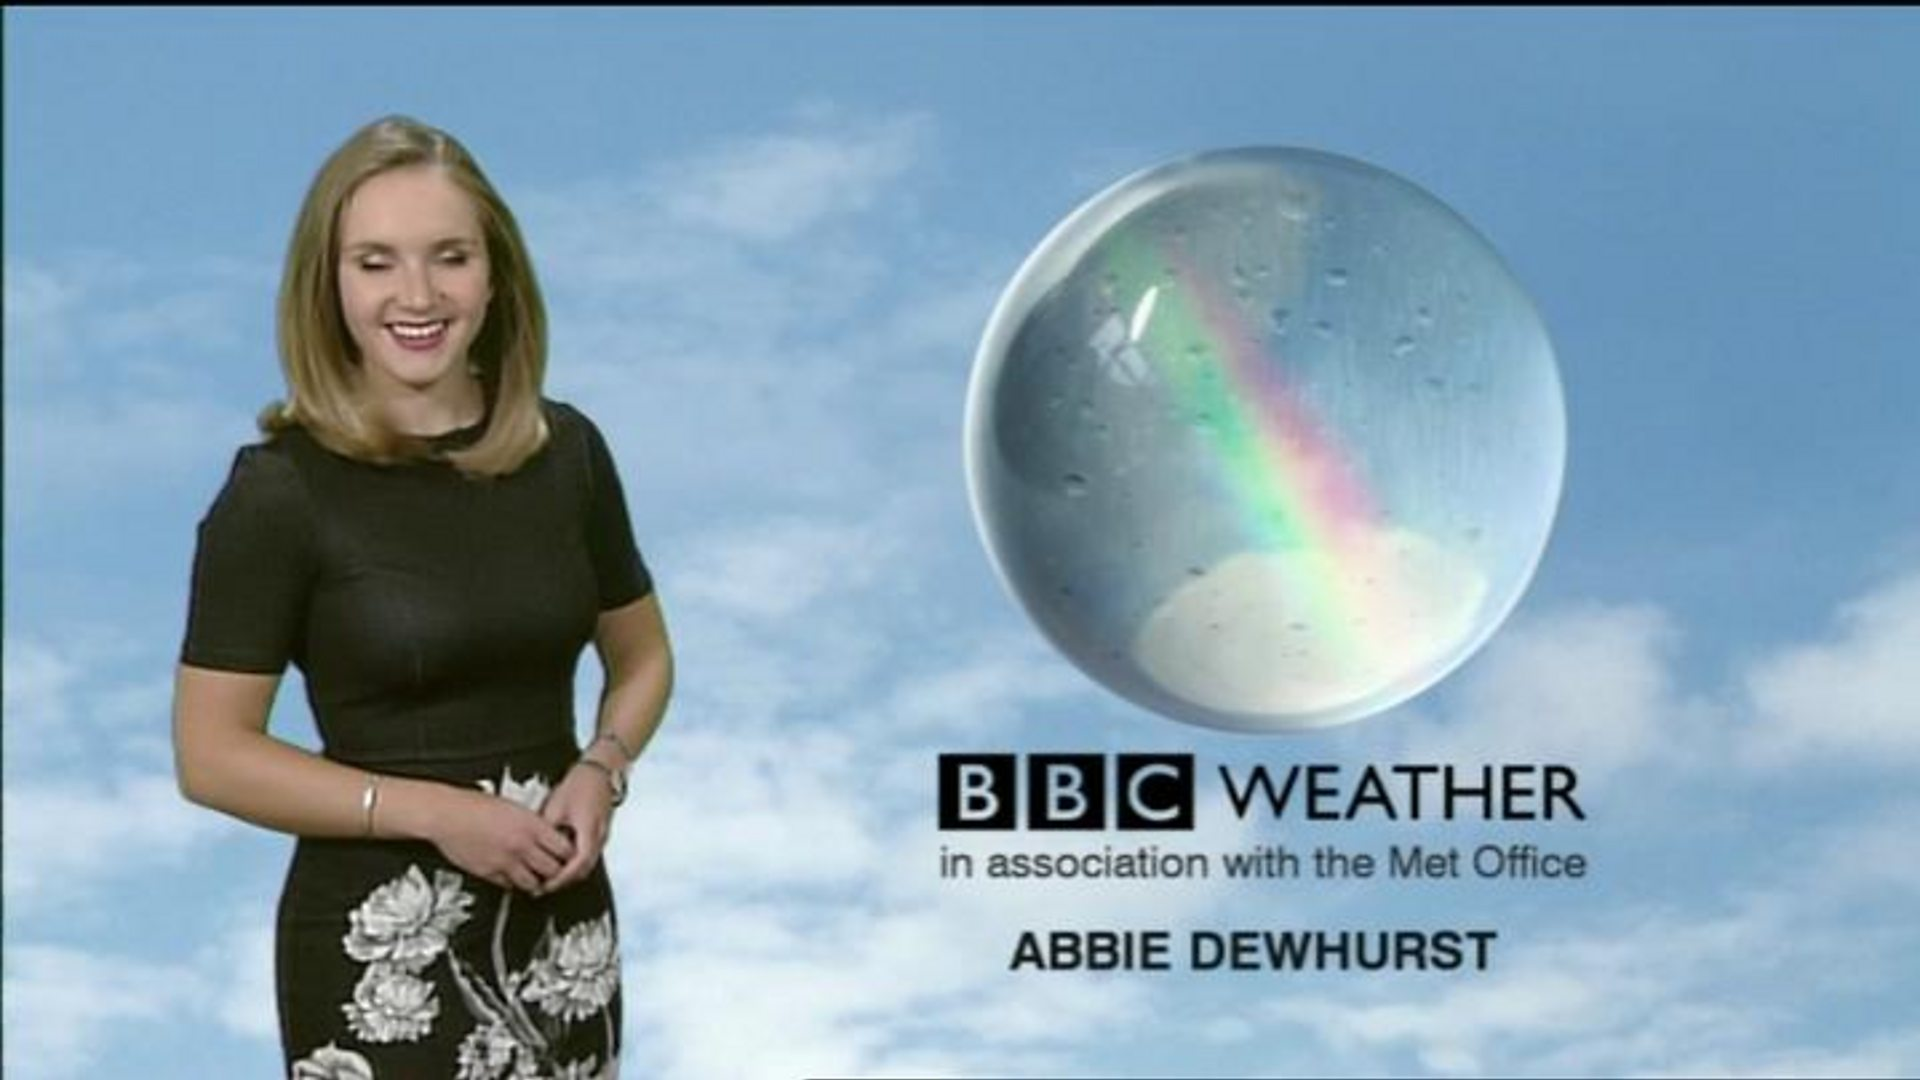 Bbc weather - Bbc One Look North East Yorkshire And Lincolnshire Lunchtime News 27 04 2017 Morning Weather Thursday 27 April